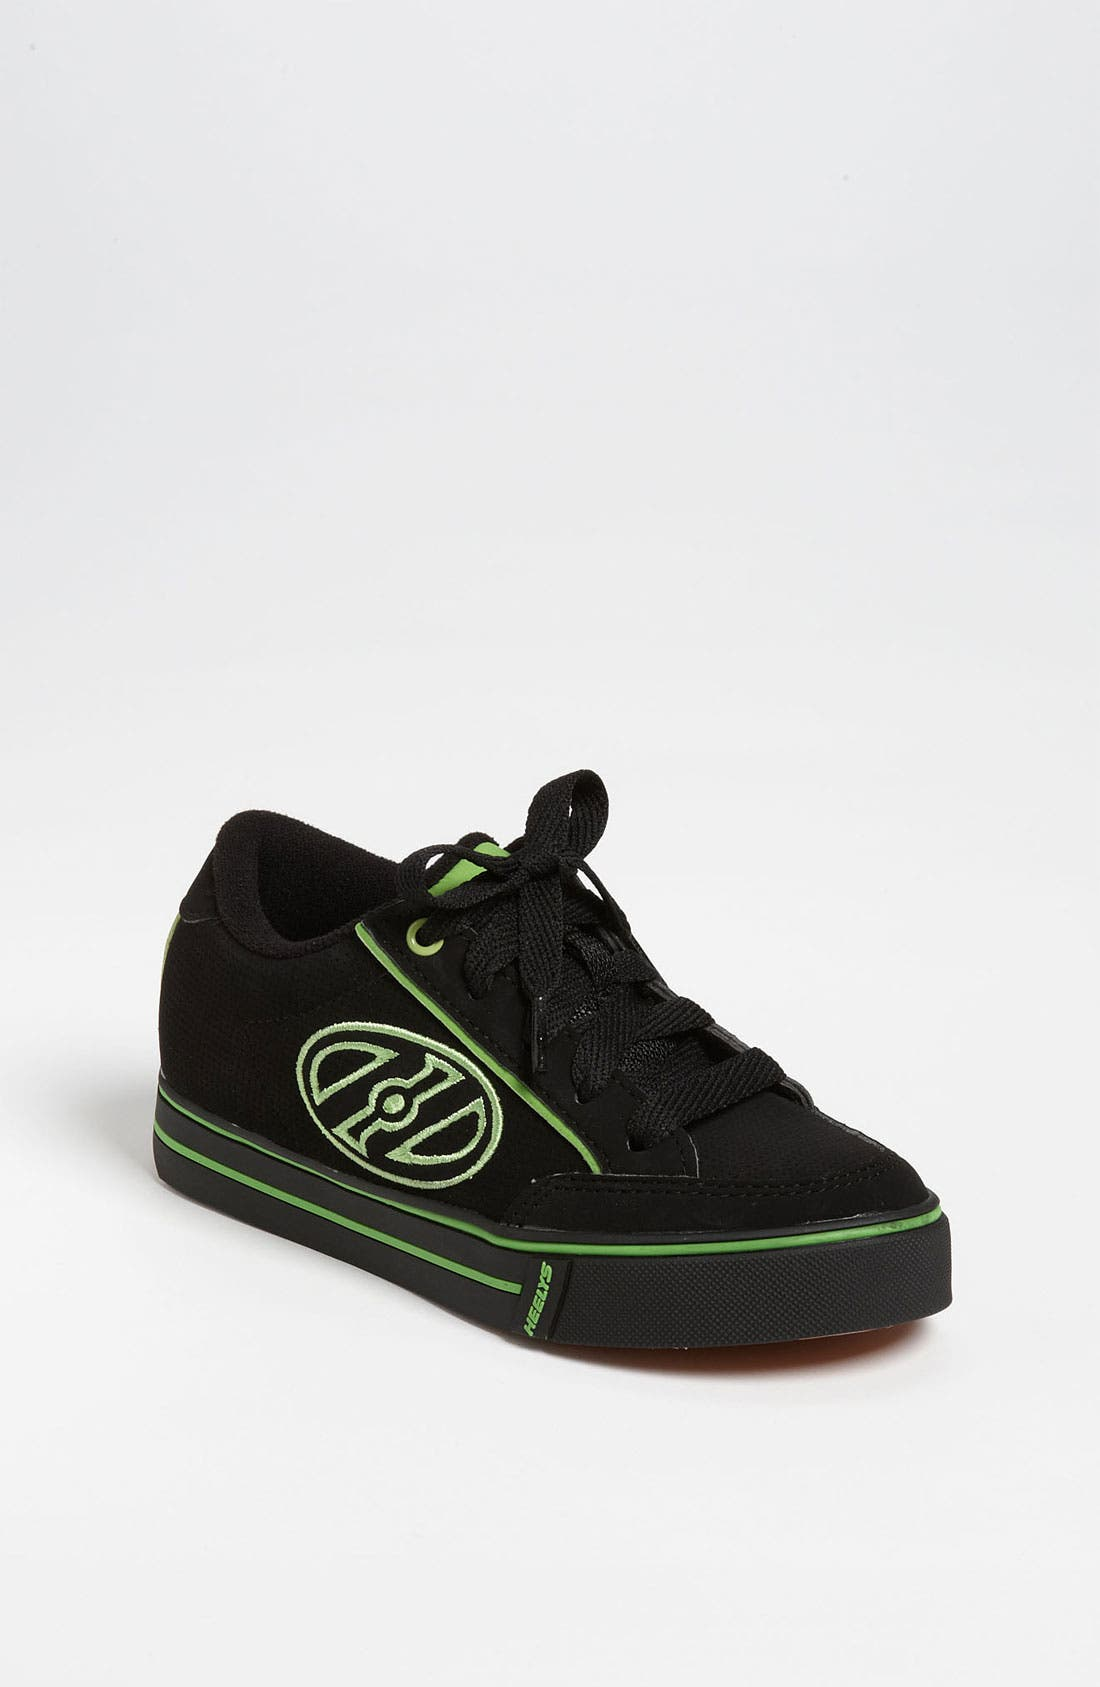 Main Image - Heelys 'Wave' Skate Shoe (Toddler, Little Kids & Big Kids)